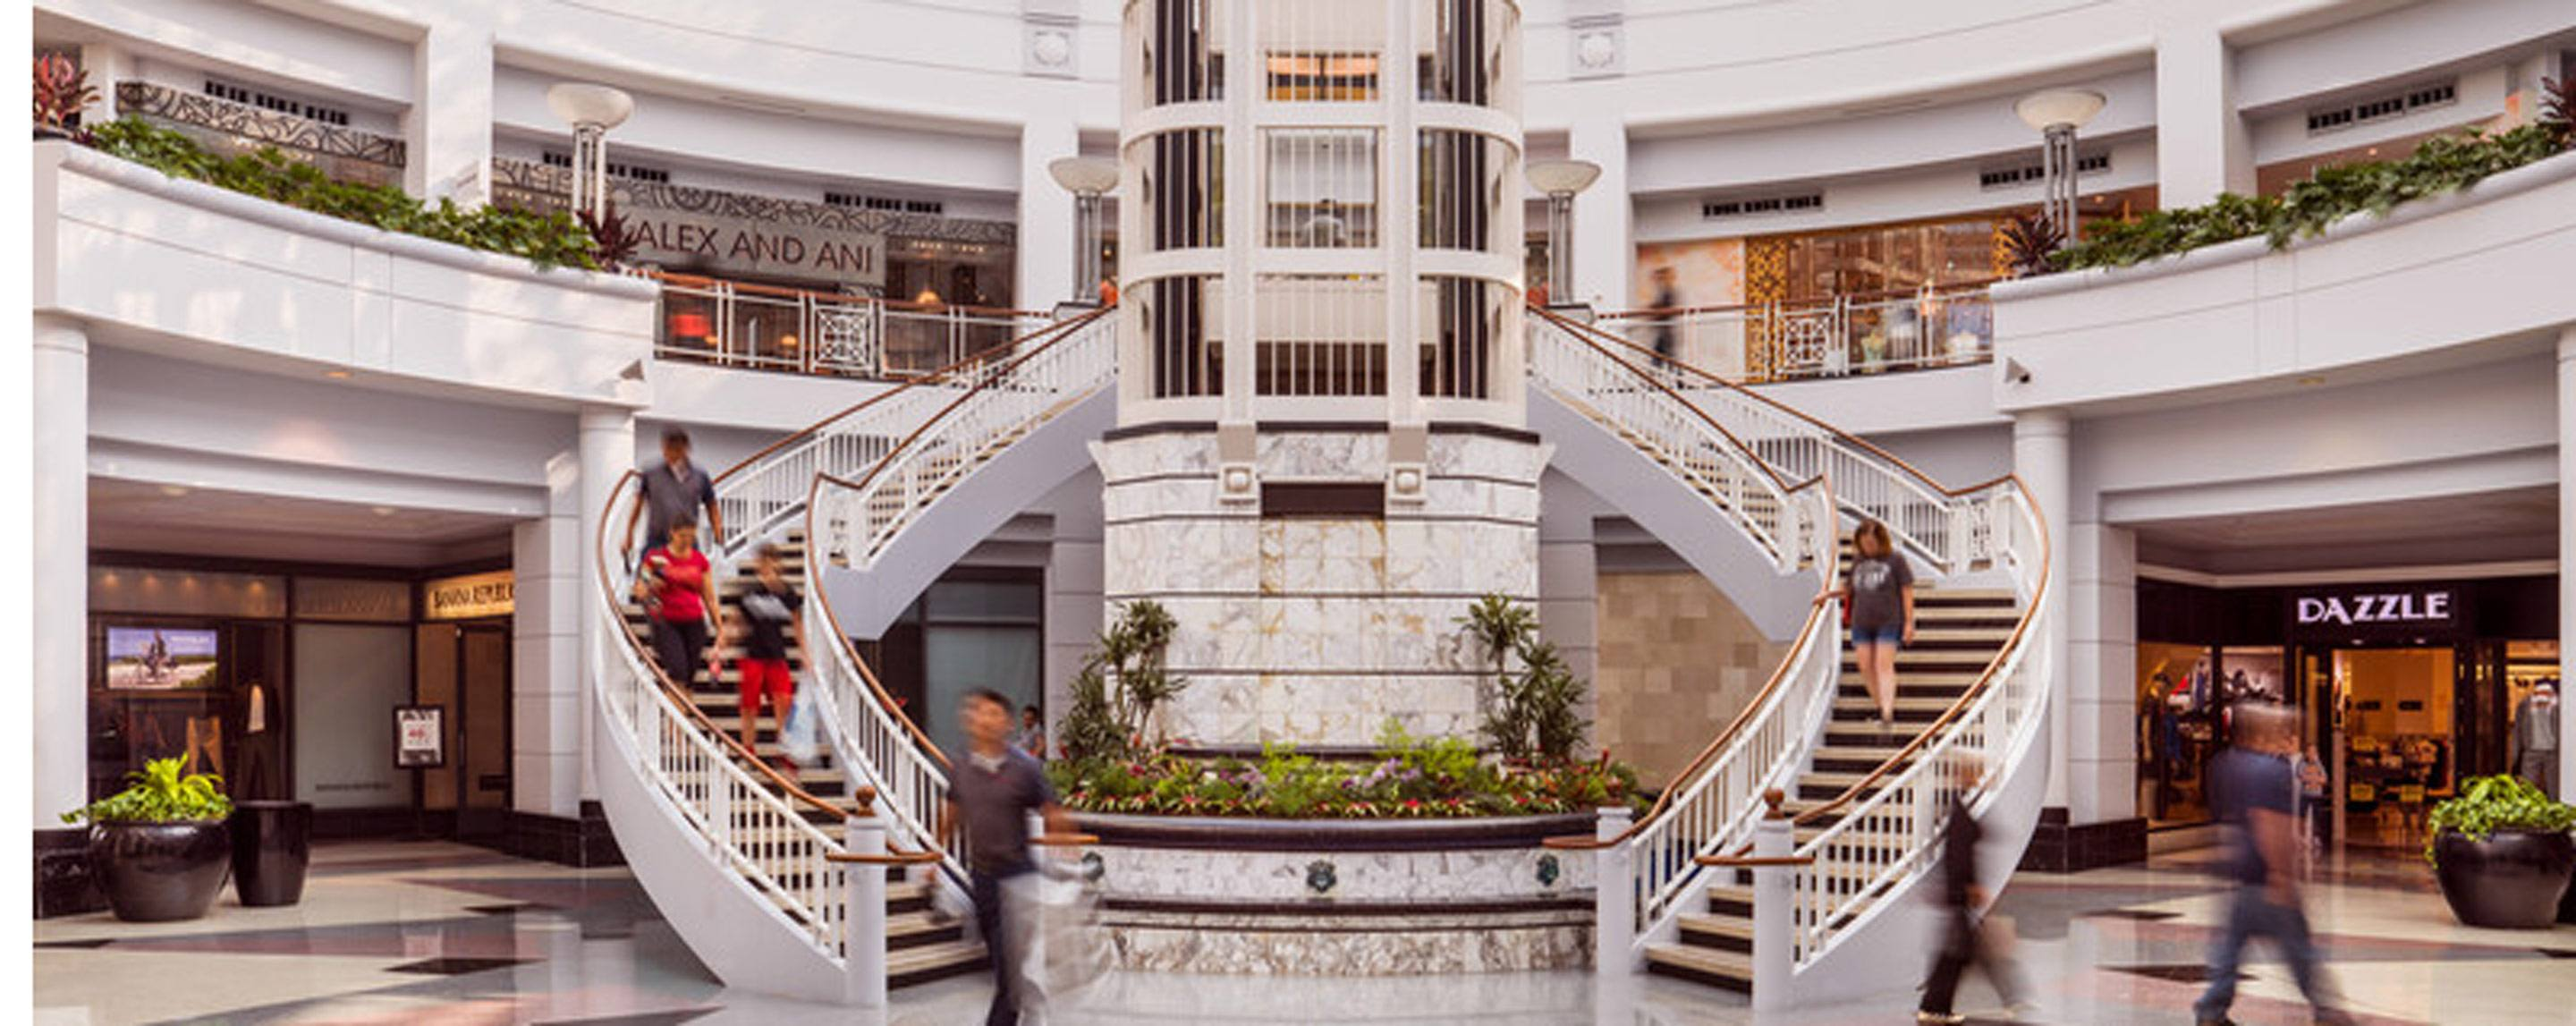 A double staircase leads upstairs in a mall. Storefronts including Dazzle and Alex and Ani are visible